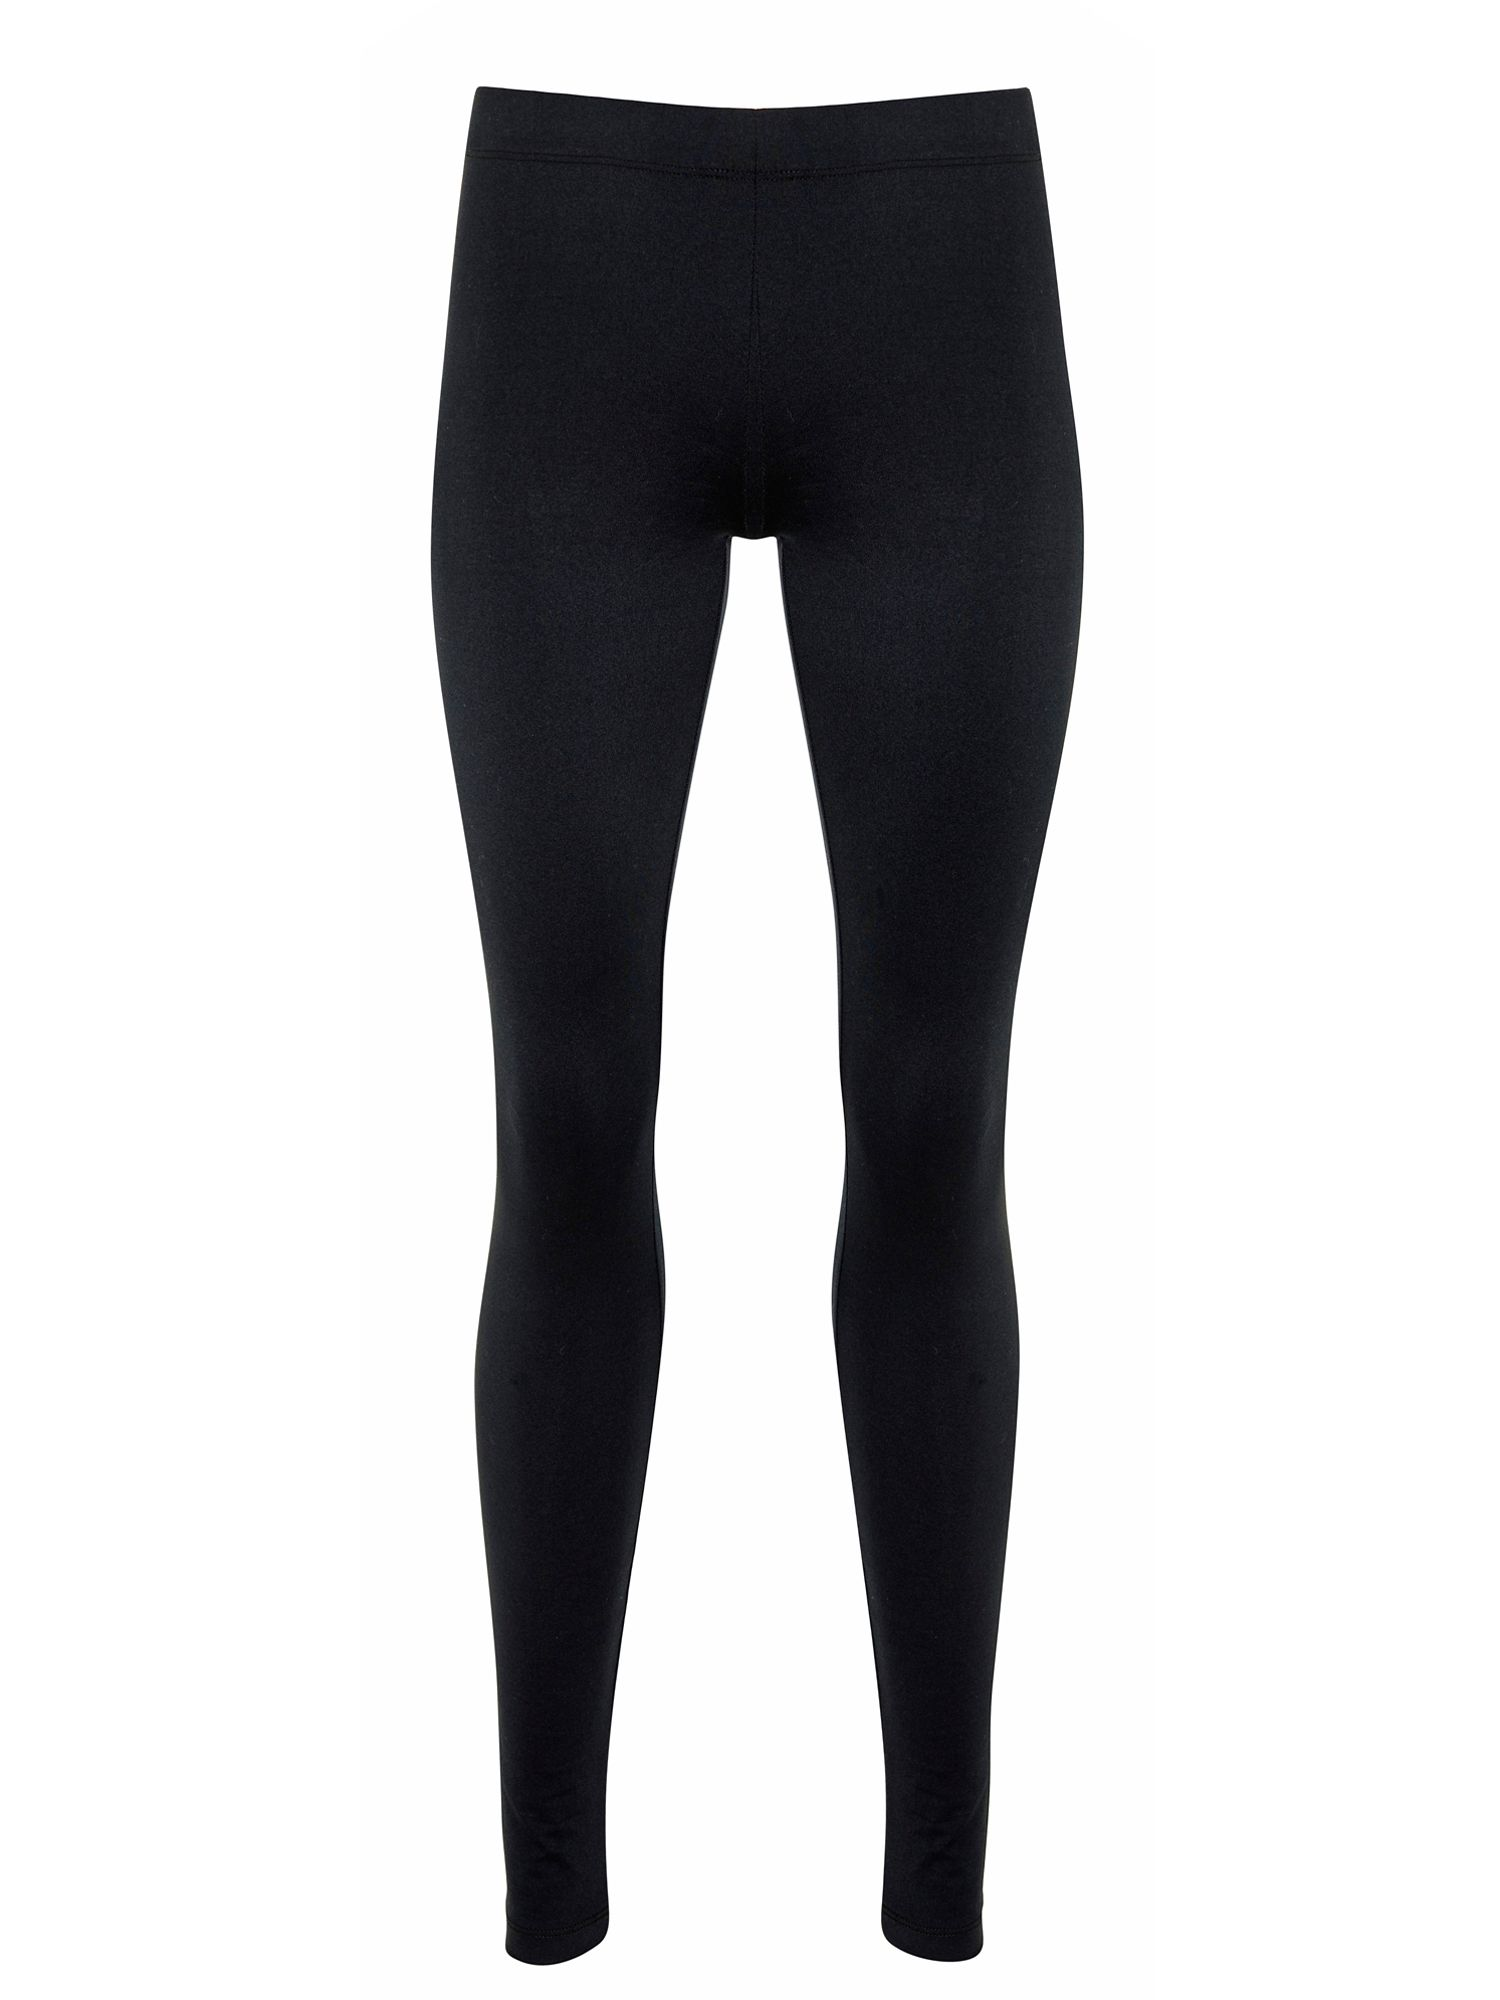 HotSquash Leggings with unique ThinHeat Tech, Black